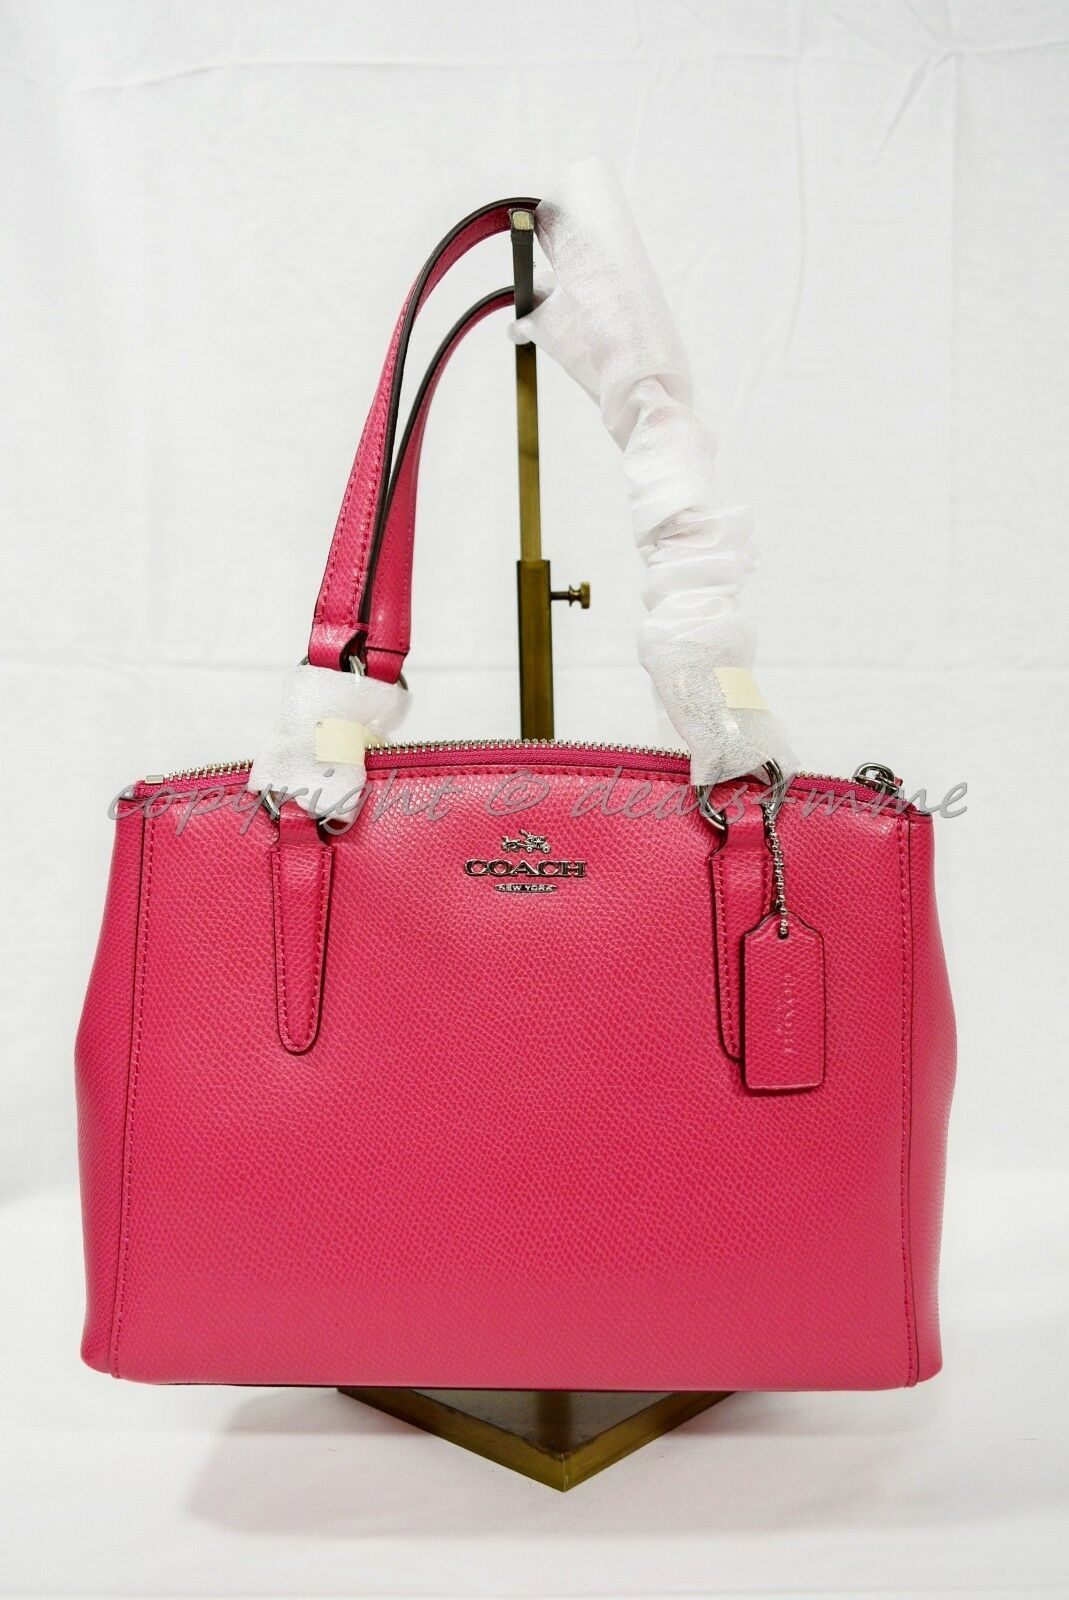 Primary image for Coach 57265M Crossgrain Mini Christie Satchel/Shoulder Bag in Amaranth - Pink